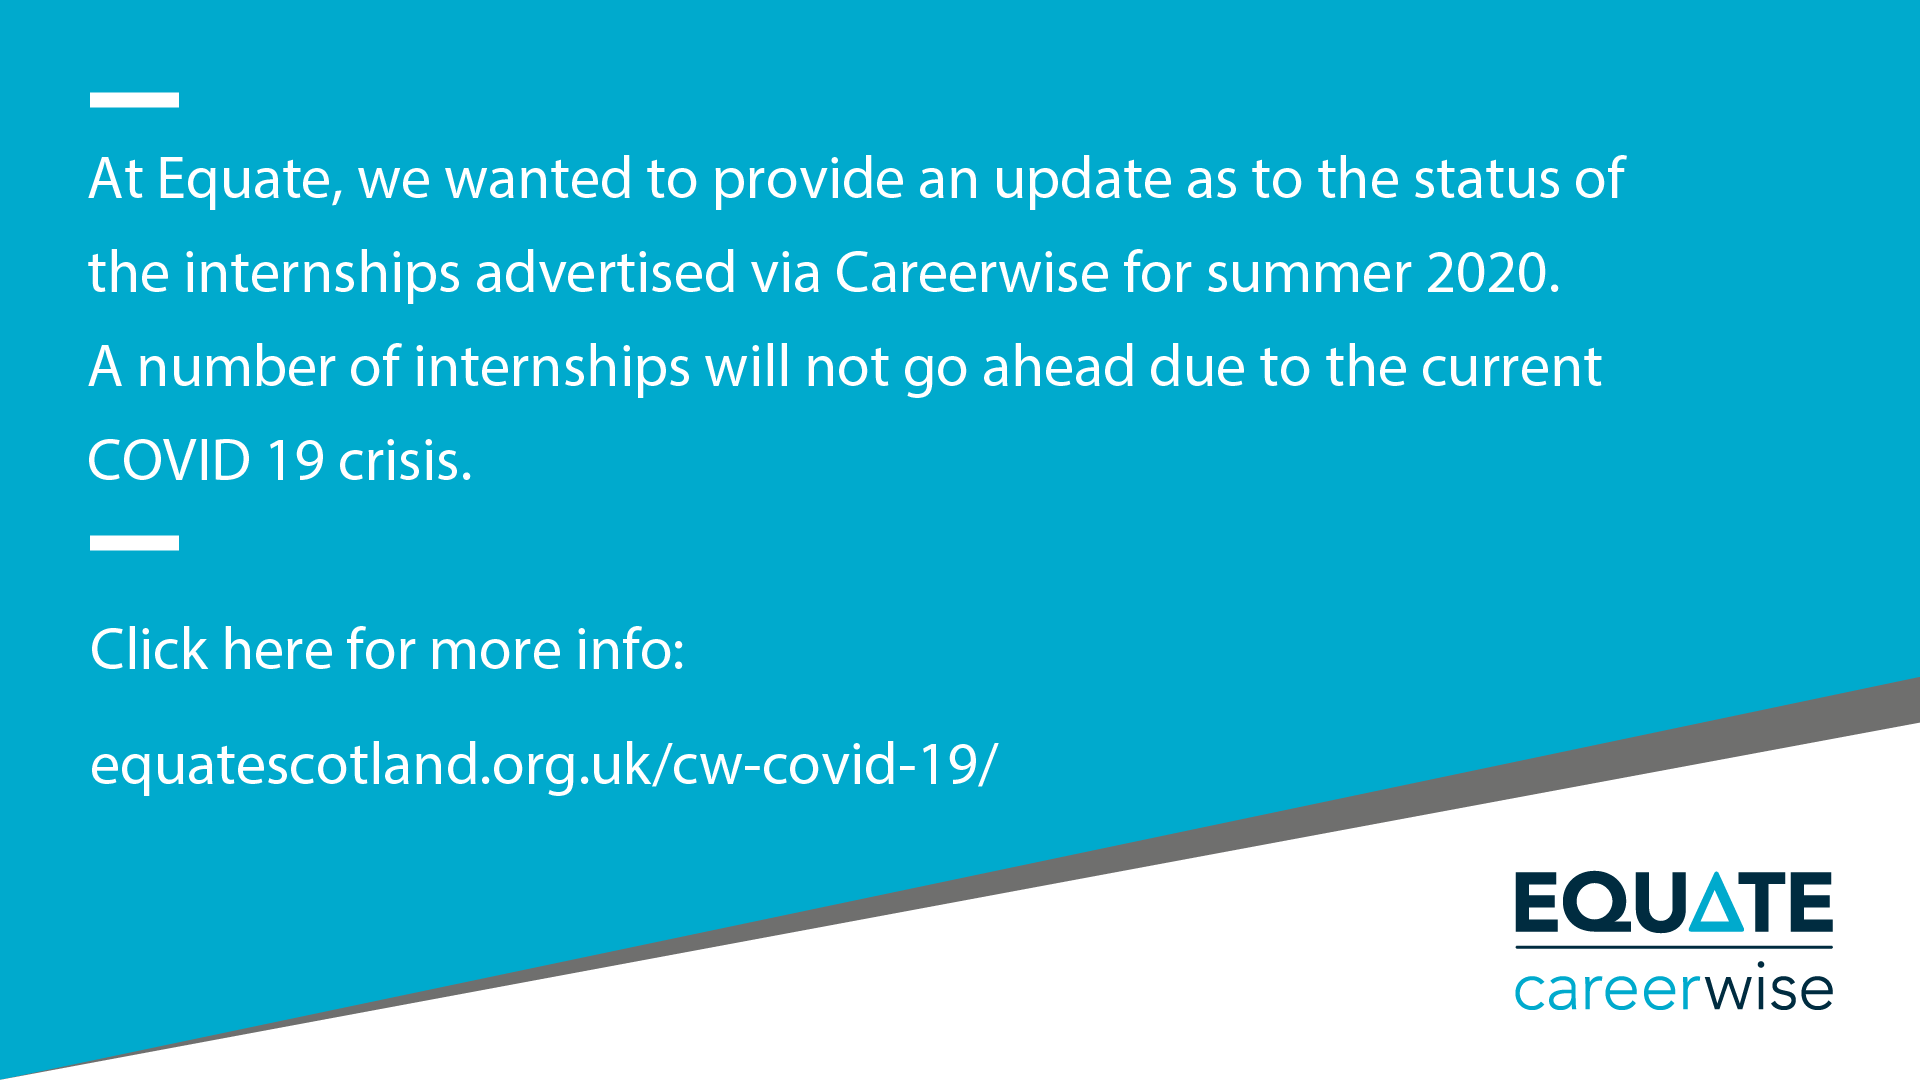 At Equate, we wanted to provide an update as to the status of the internships advertised via Careerwise for Summer 2020. A number of internships will not go ahead due to the current COVID-19 crisis. More information is available via this link.